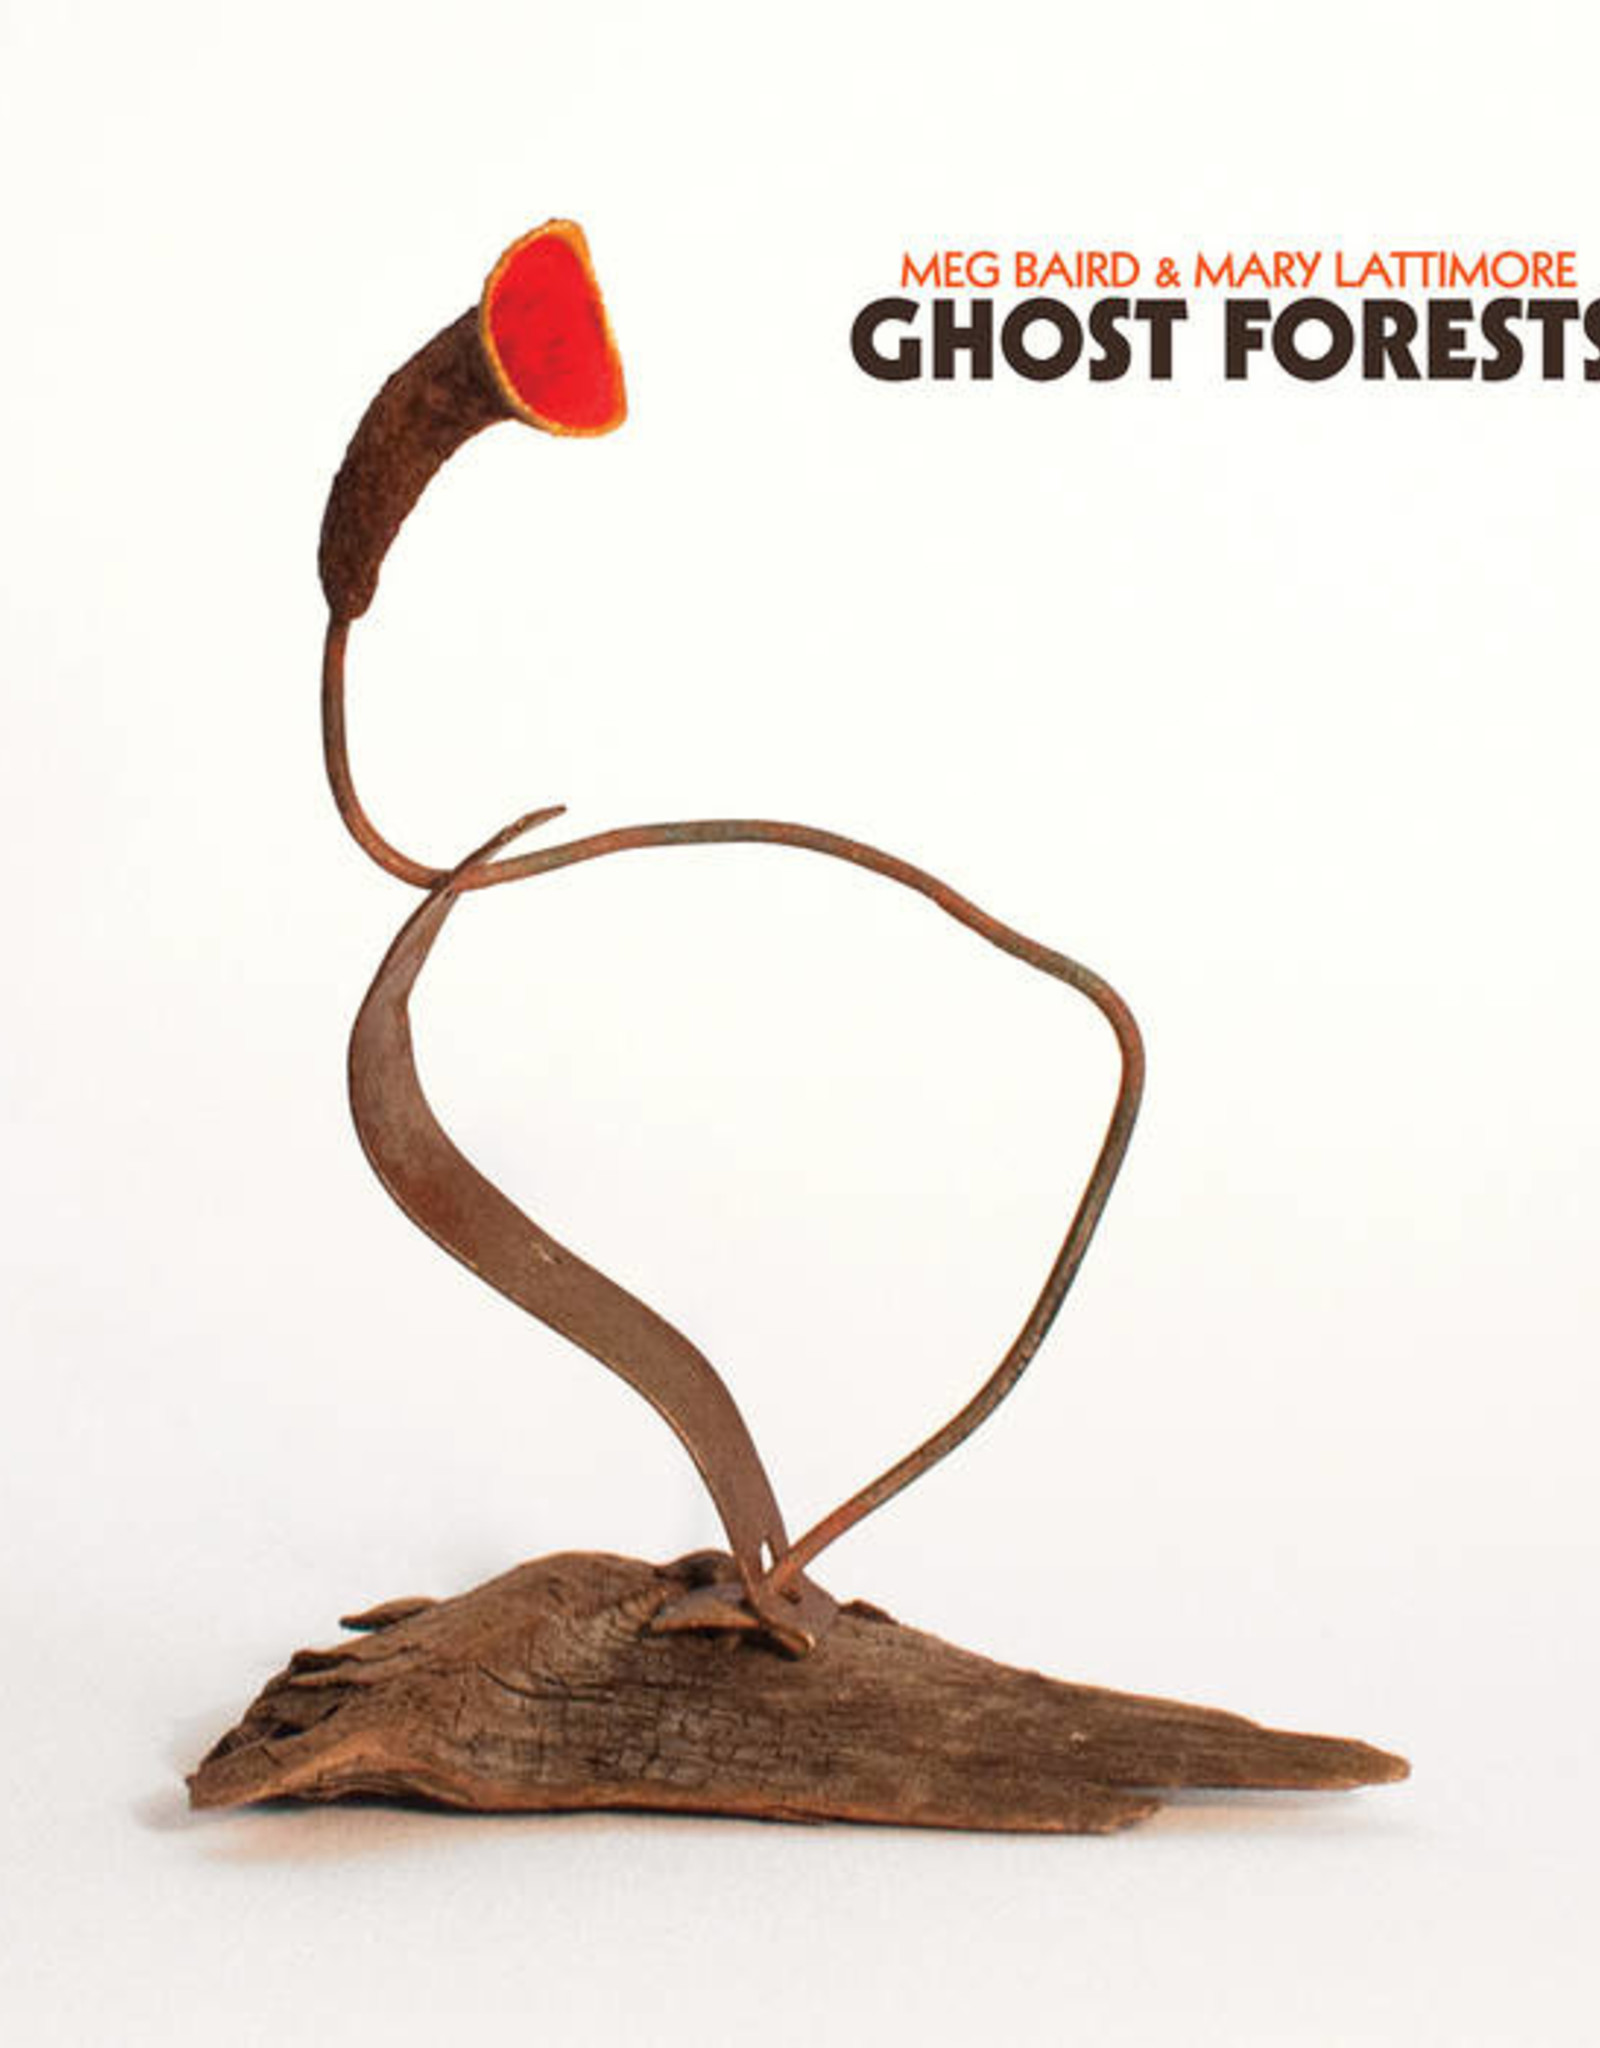 Meg Baird & Mary Lattimore - Ghosts Forests